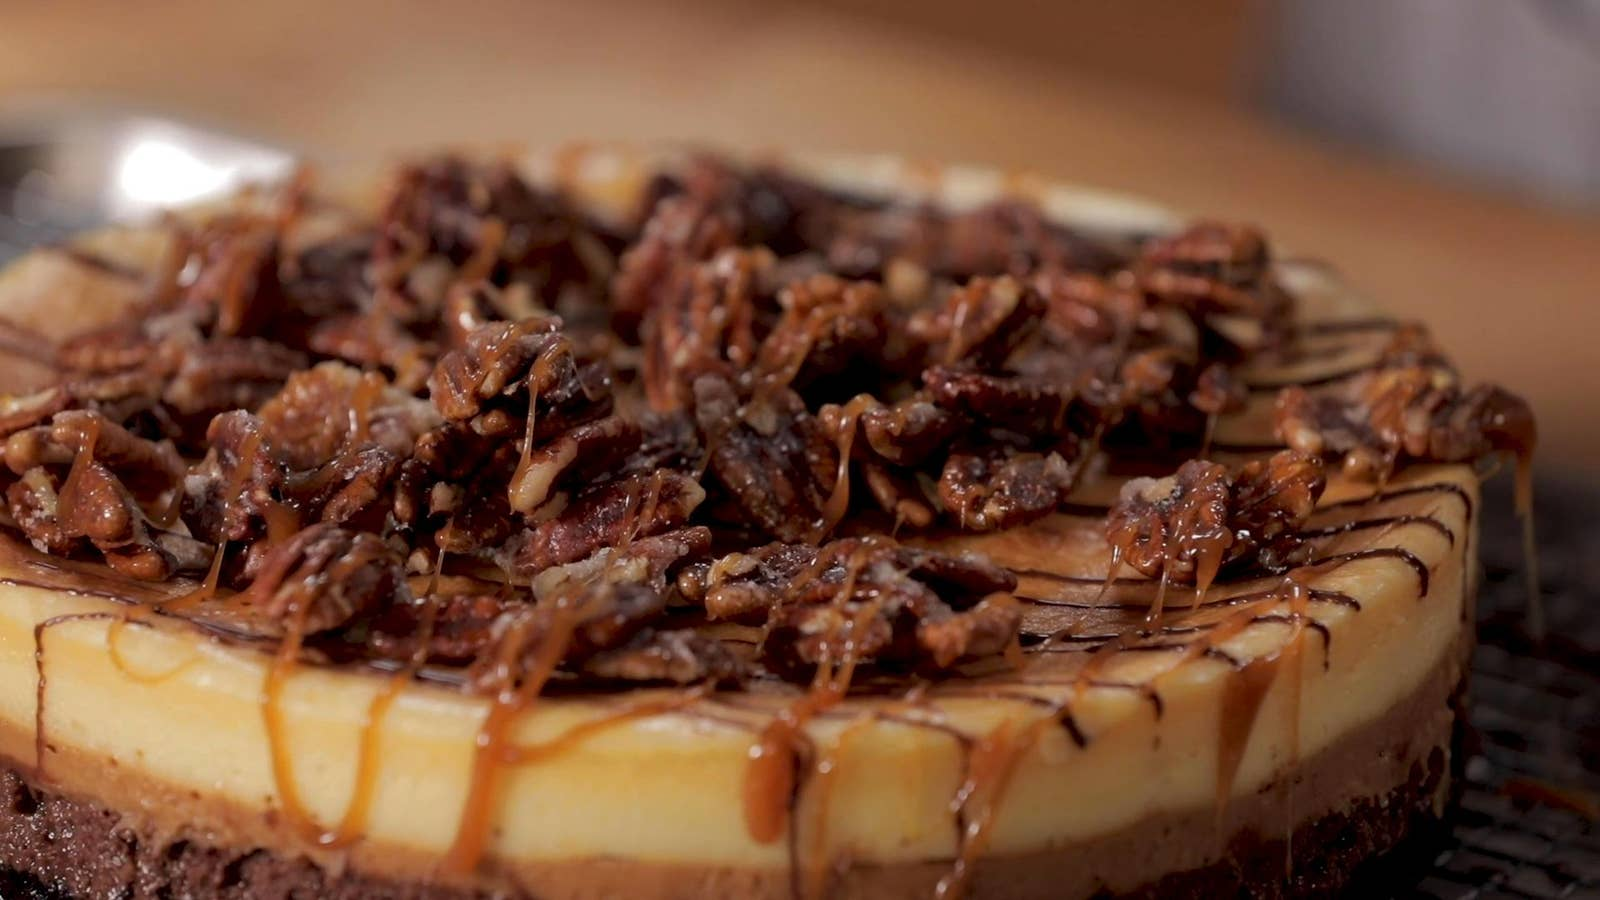 2-Day Turtle Cheesecake